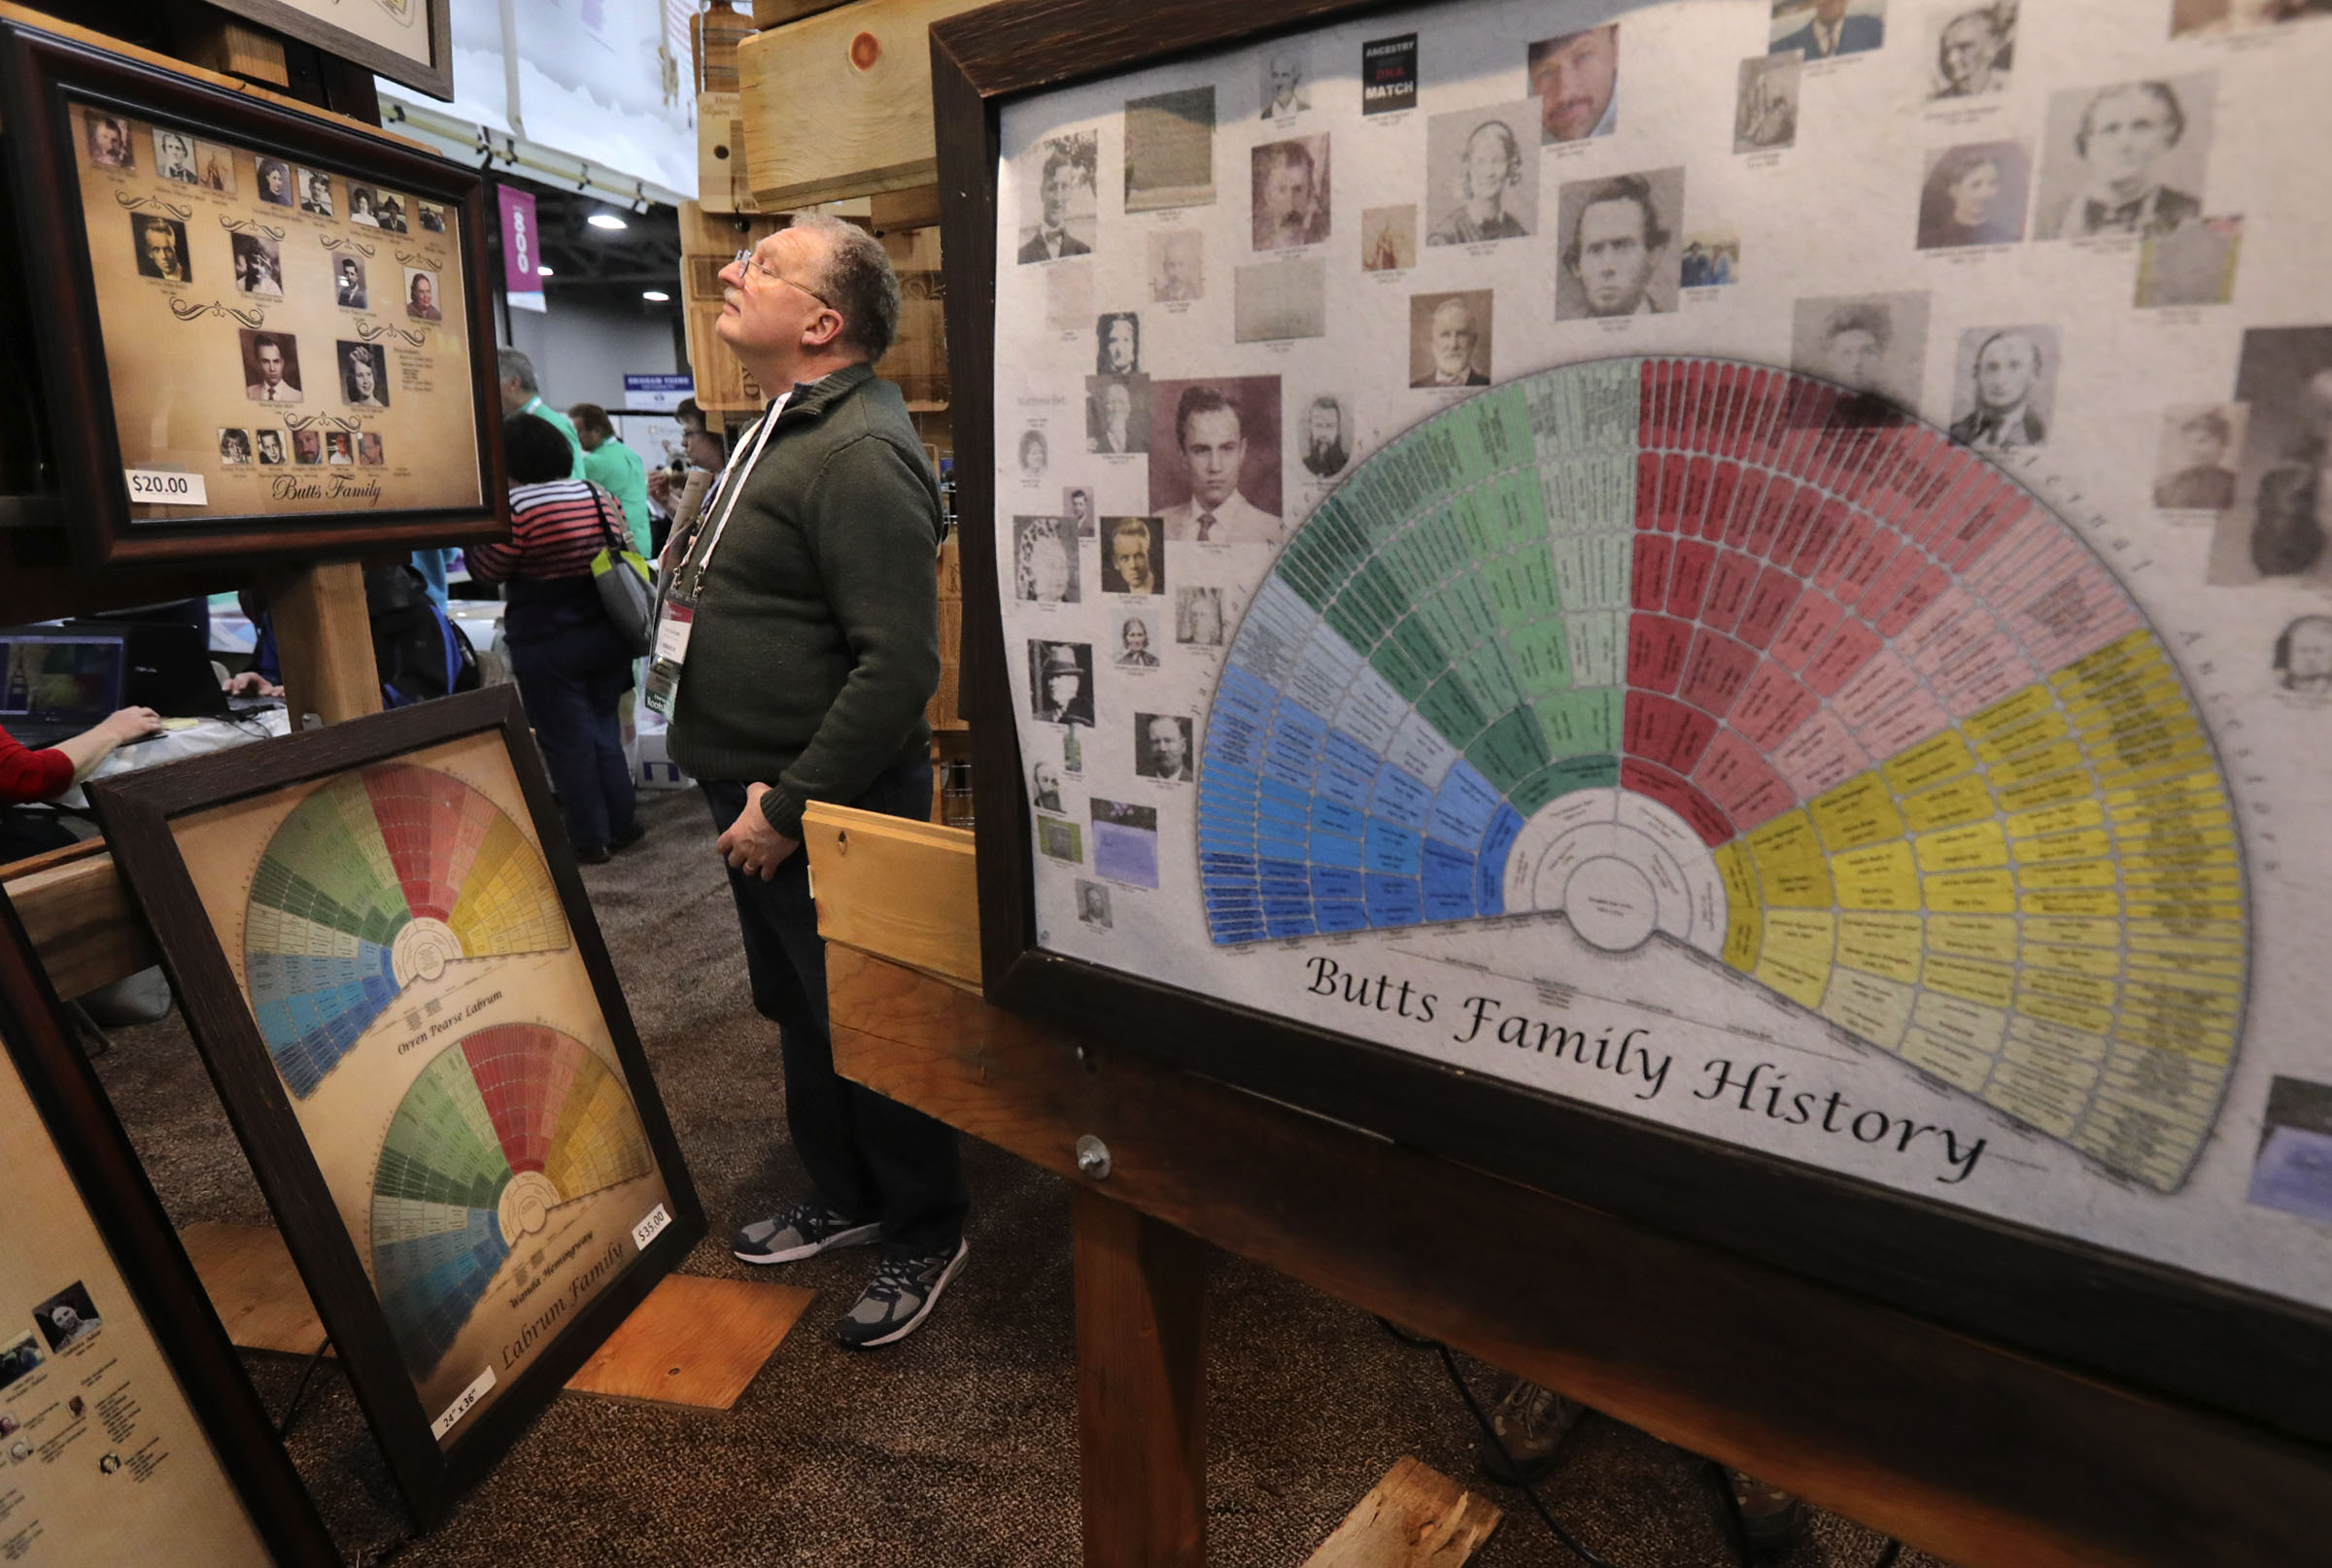 Fred Graham looks at Genealogy WallCharts displays during RootsTech at the Salt Palace Convention Center in Salt Lake City on Thursday, Feb. 28, 2019.